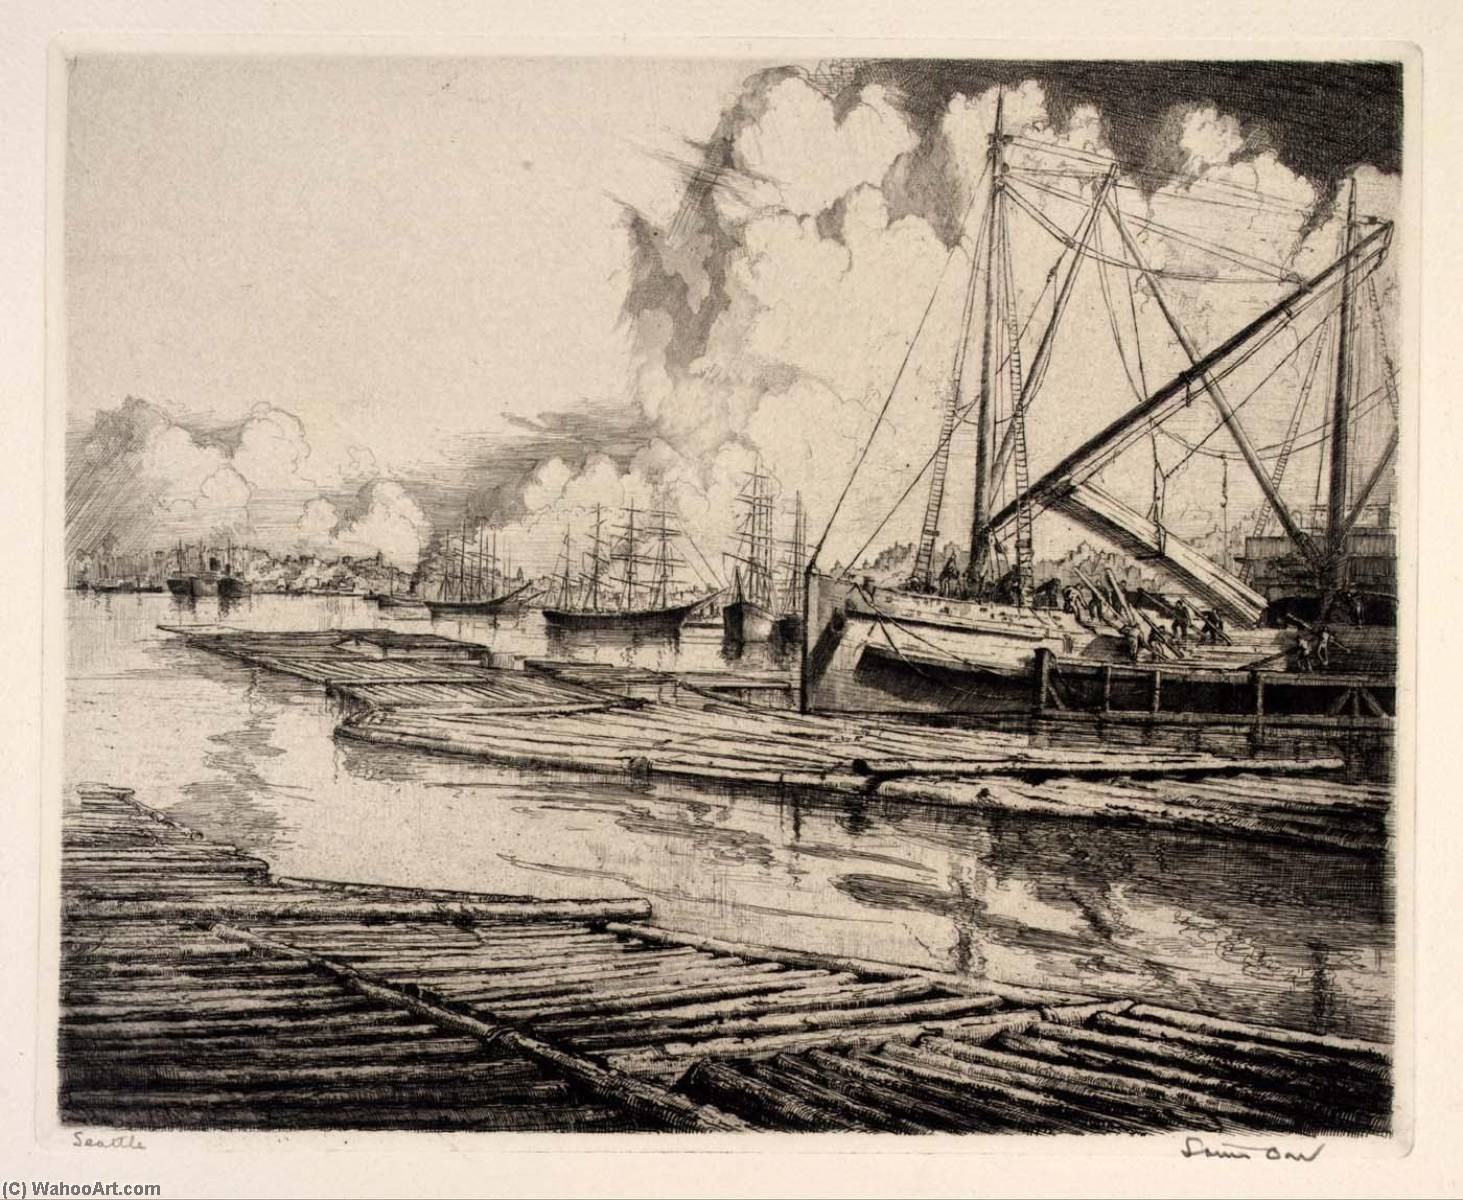 (Ports of America, portfolio) Seattle, Etching by Louis Orr